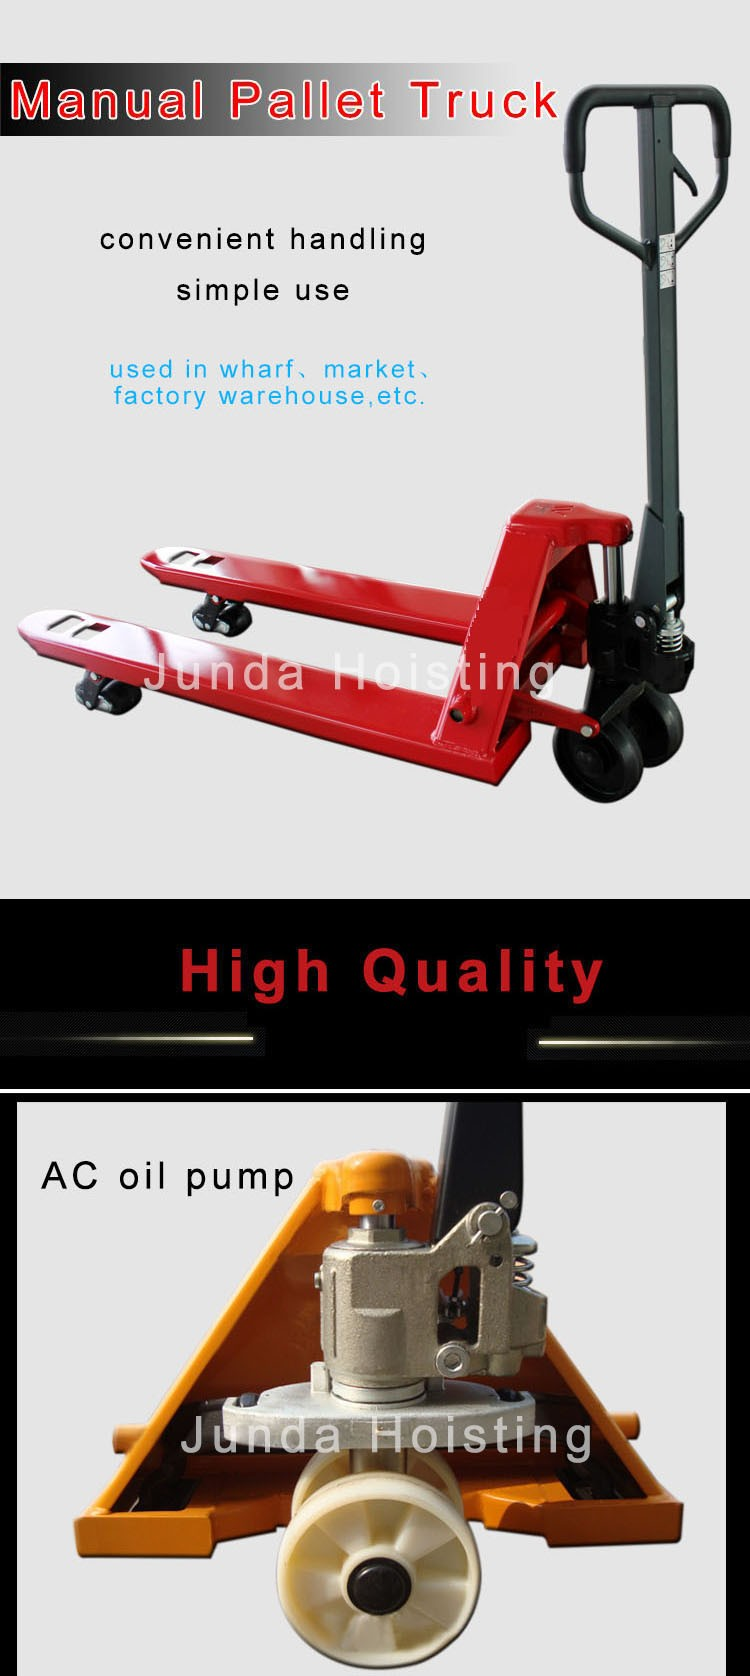 2/2.5/3/5 T Low Price 1200*685/1150*550 Fork Hydraulic Lifting Hand Operated Pallet Truck